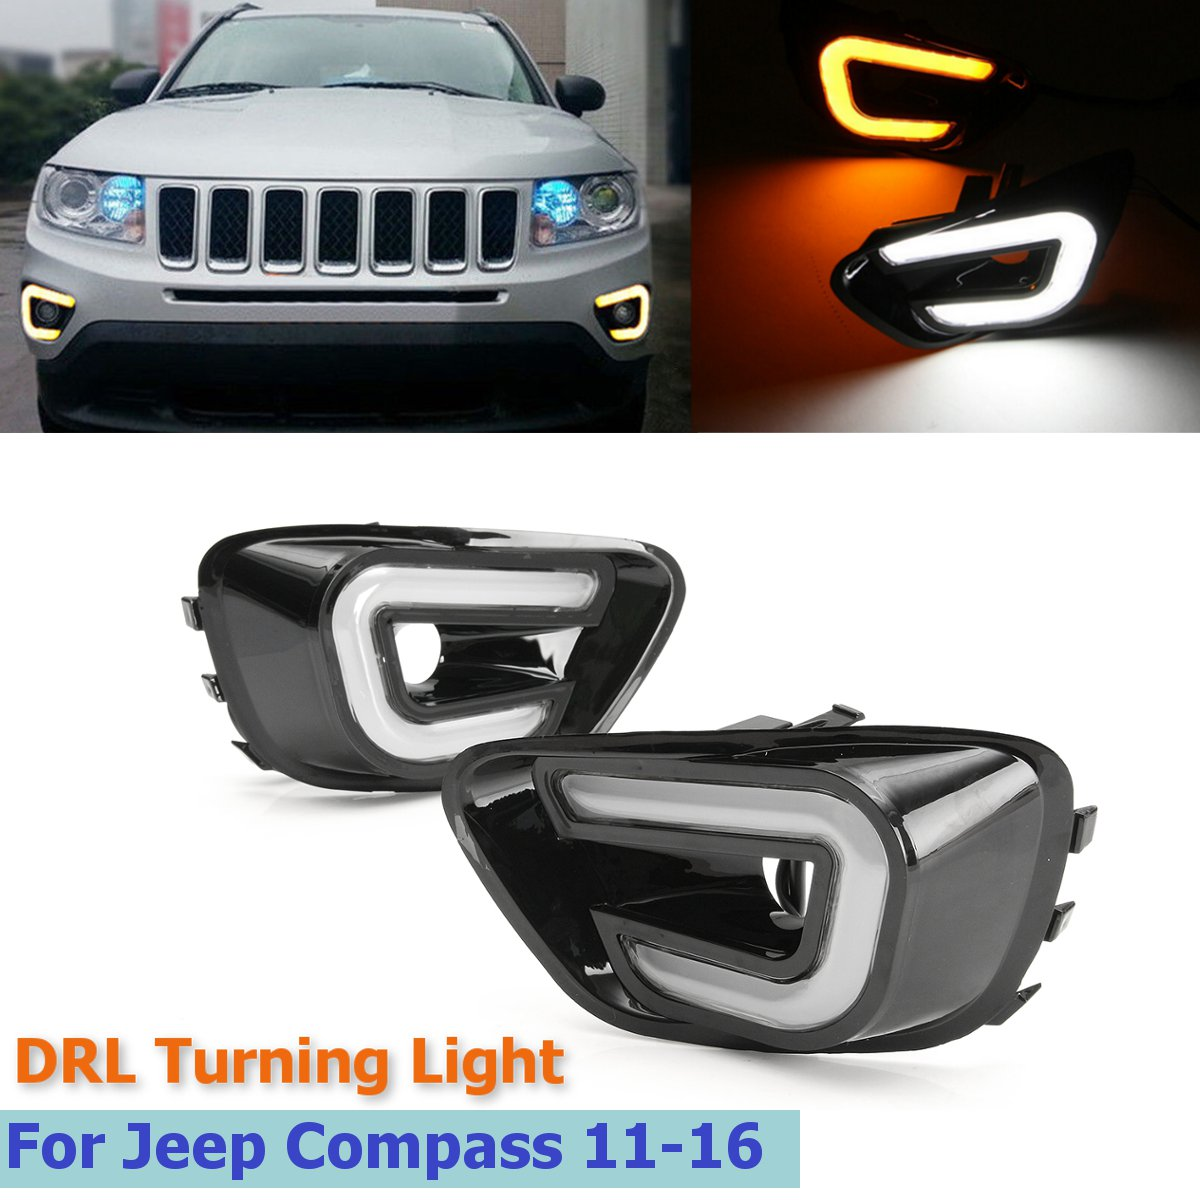 Car LED Daytime DRL Running Light White+Yellow Side Turning Light Fog Lamp for Jeep Compass 2013 2014 2015 DC 12V 1wx5 70 90lm 6000 6700k white 5 led car daytime running light black dc 12v pair